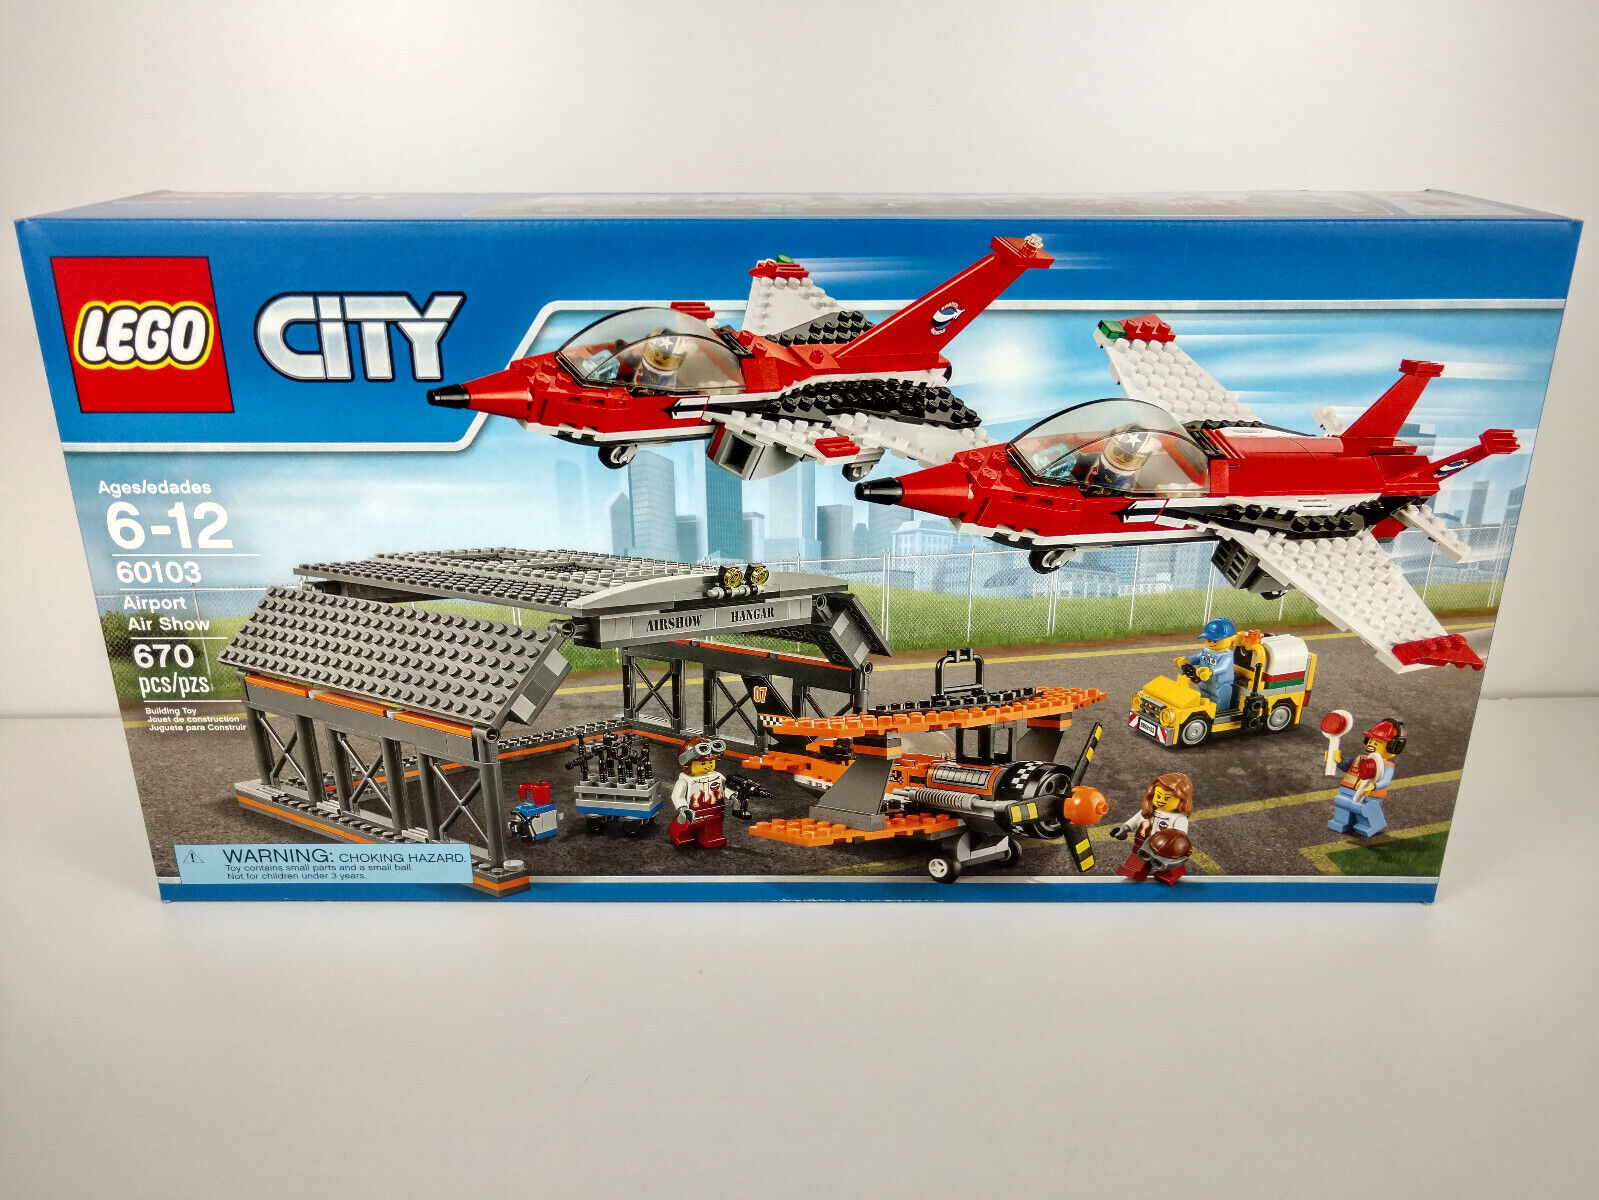 Hangar Express of Lego City Airport 60103 - New and sellation - Canadian Shipping